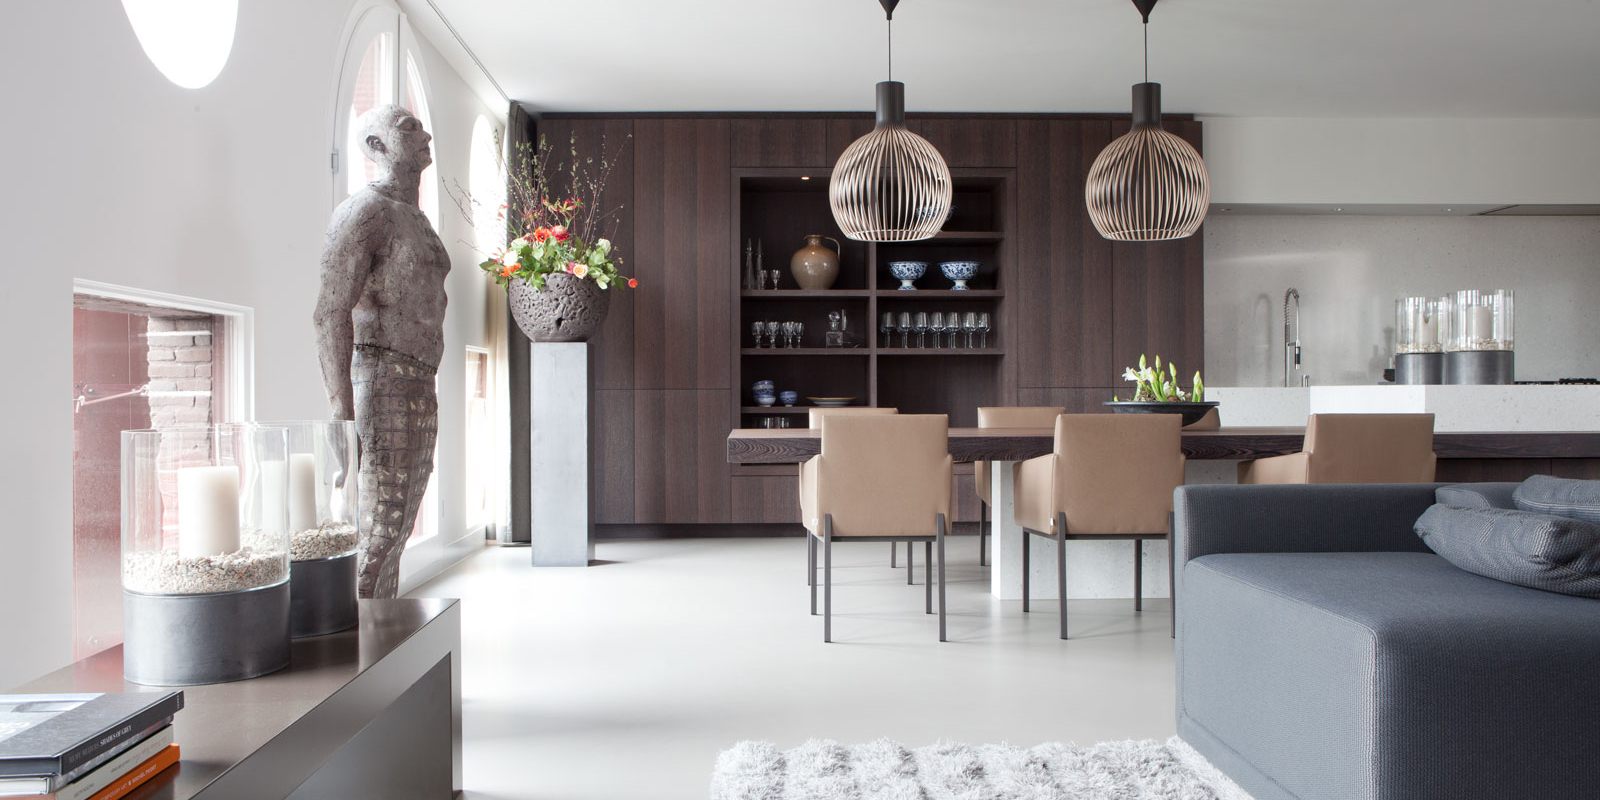 Remy Meijers, Penthouse Amsterdam, RTL Woonmagazine, luxe interieur, metamorfose